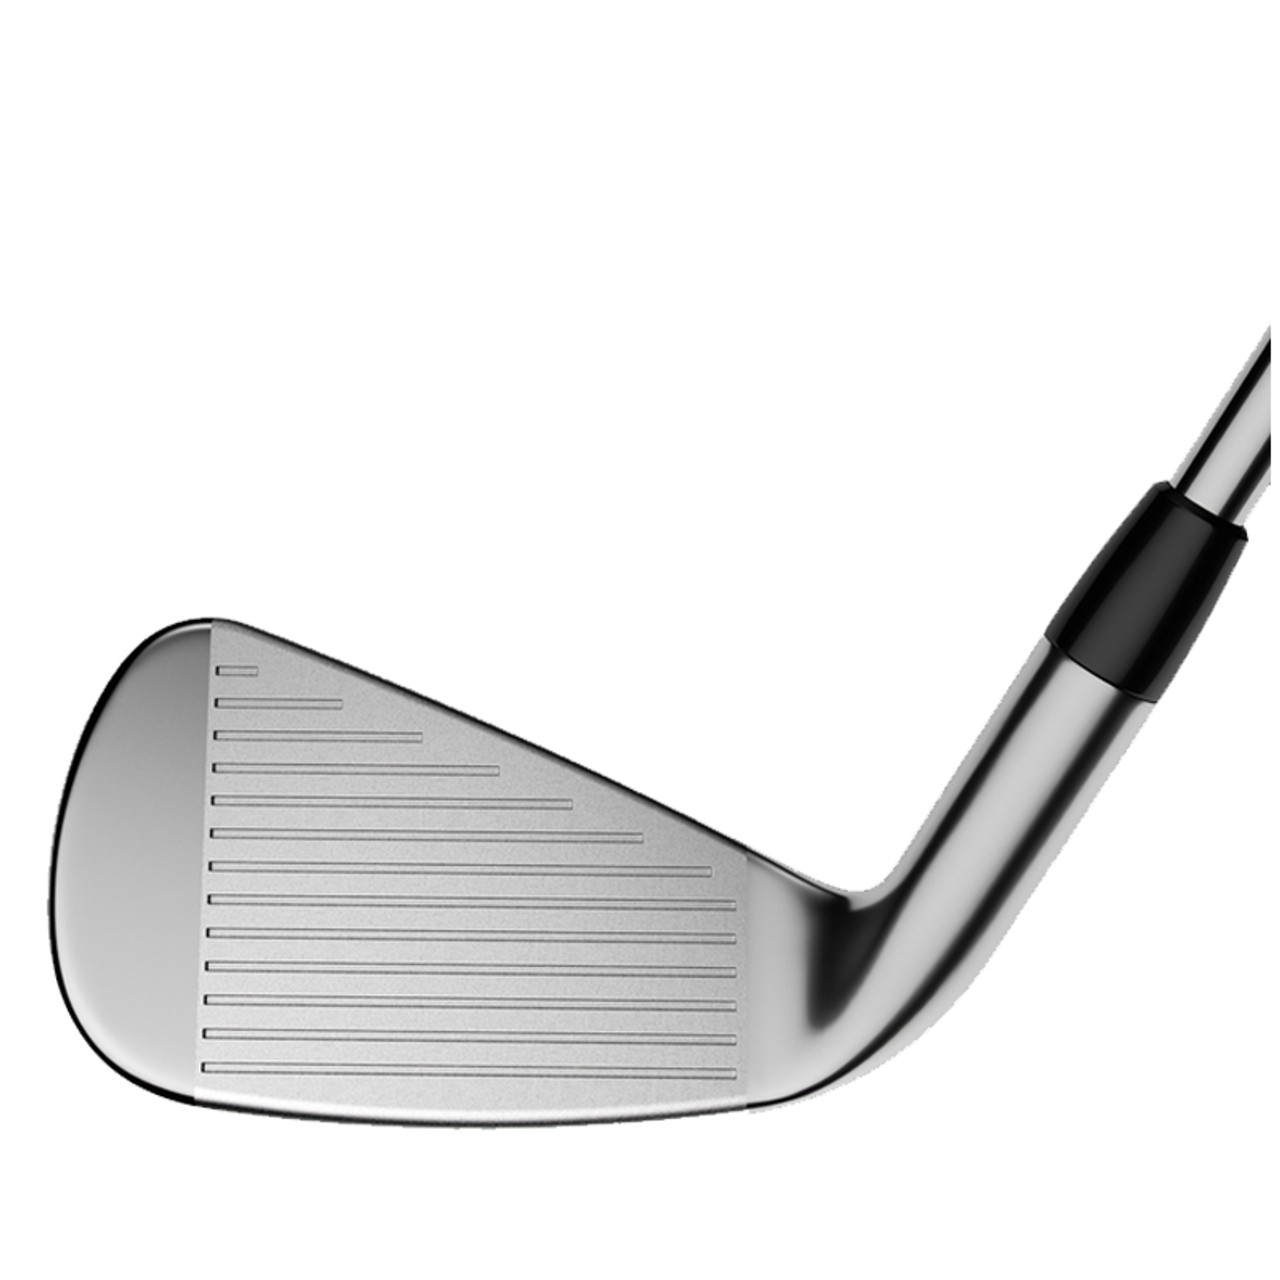 Callaway X-Forged Utility Irons